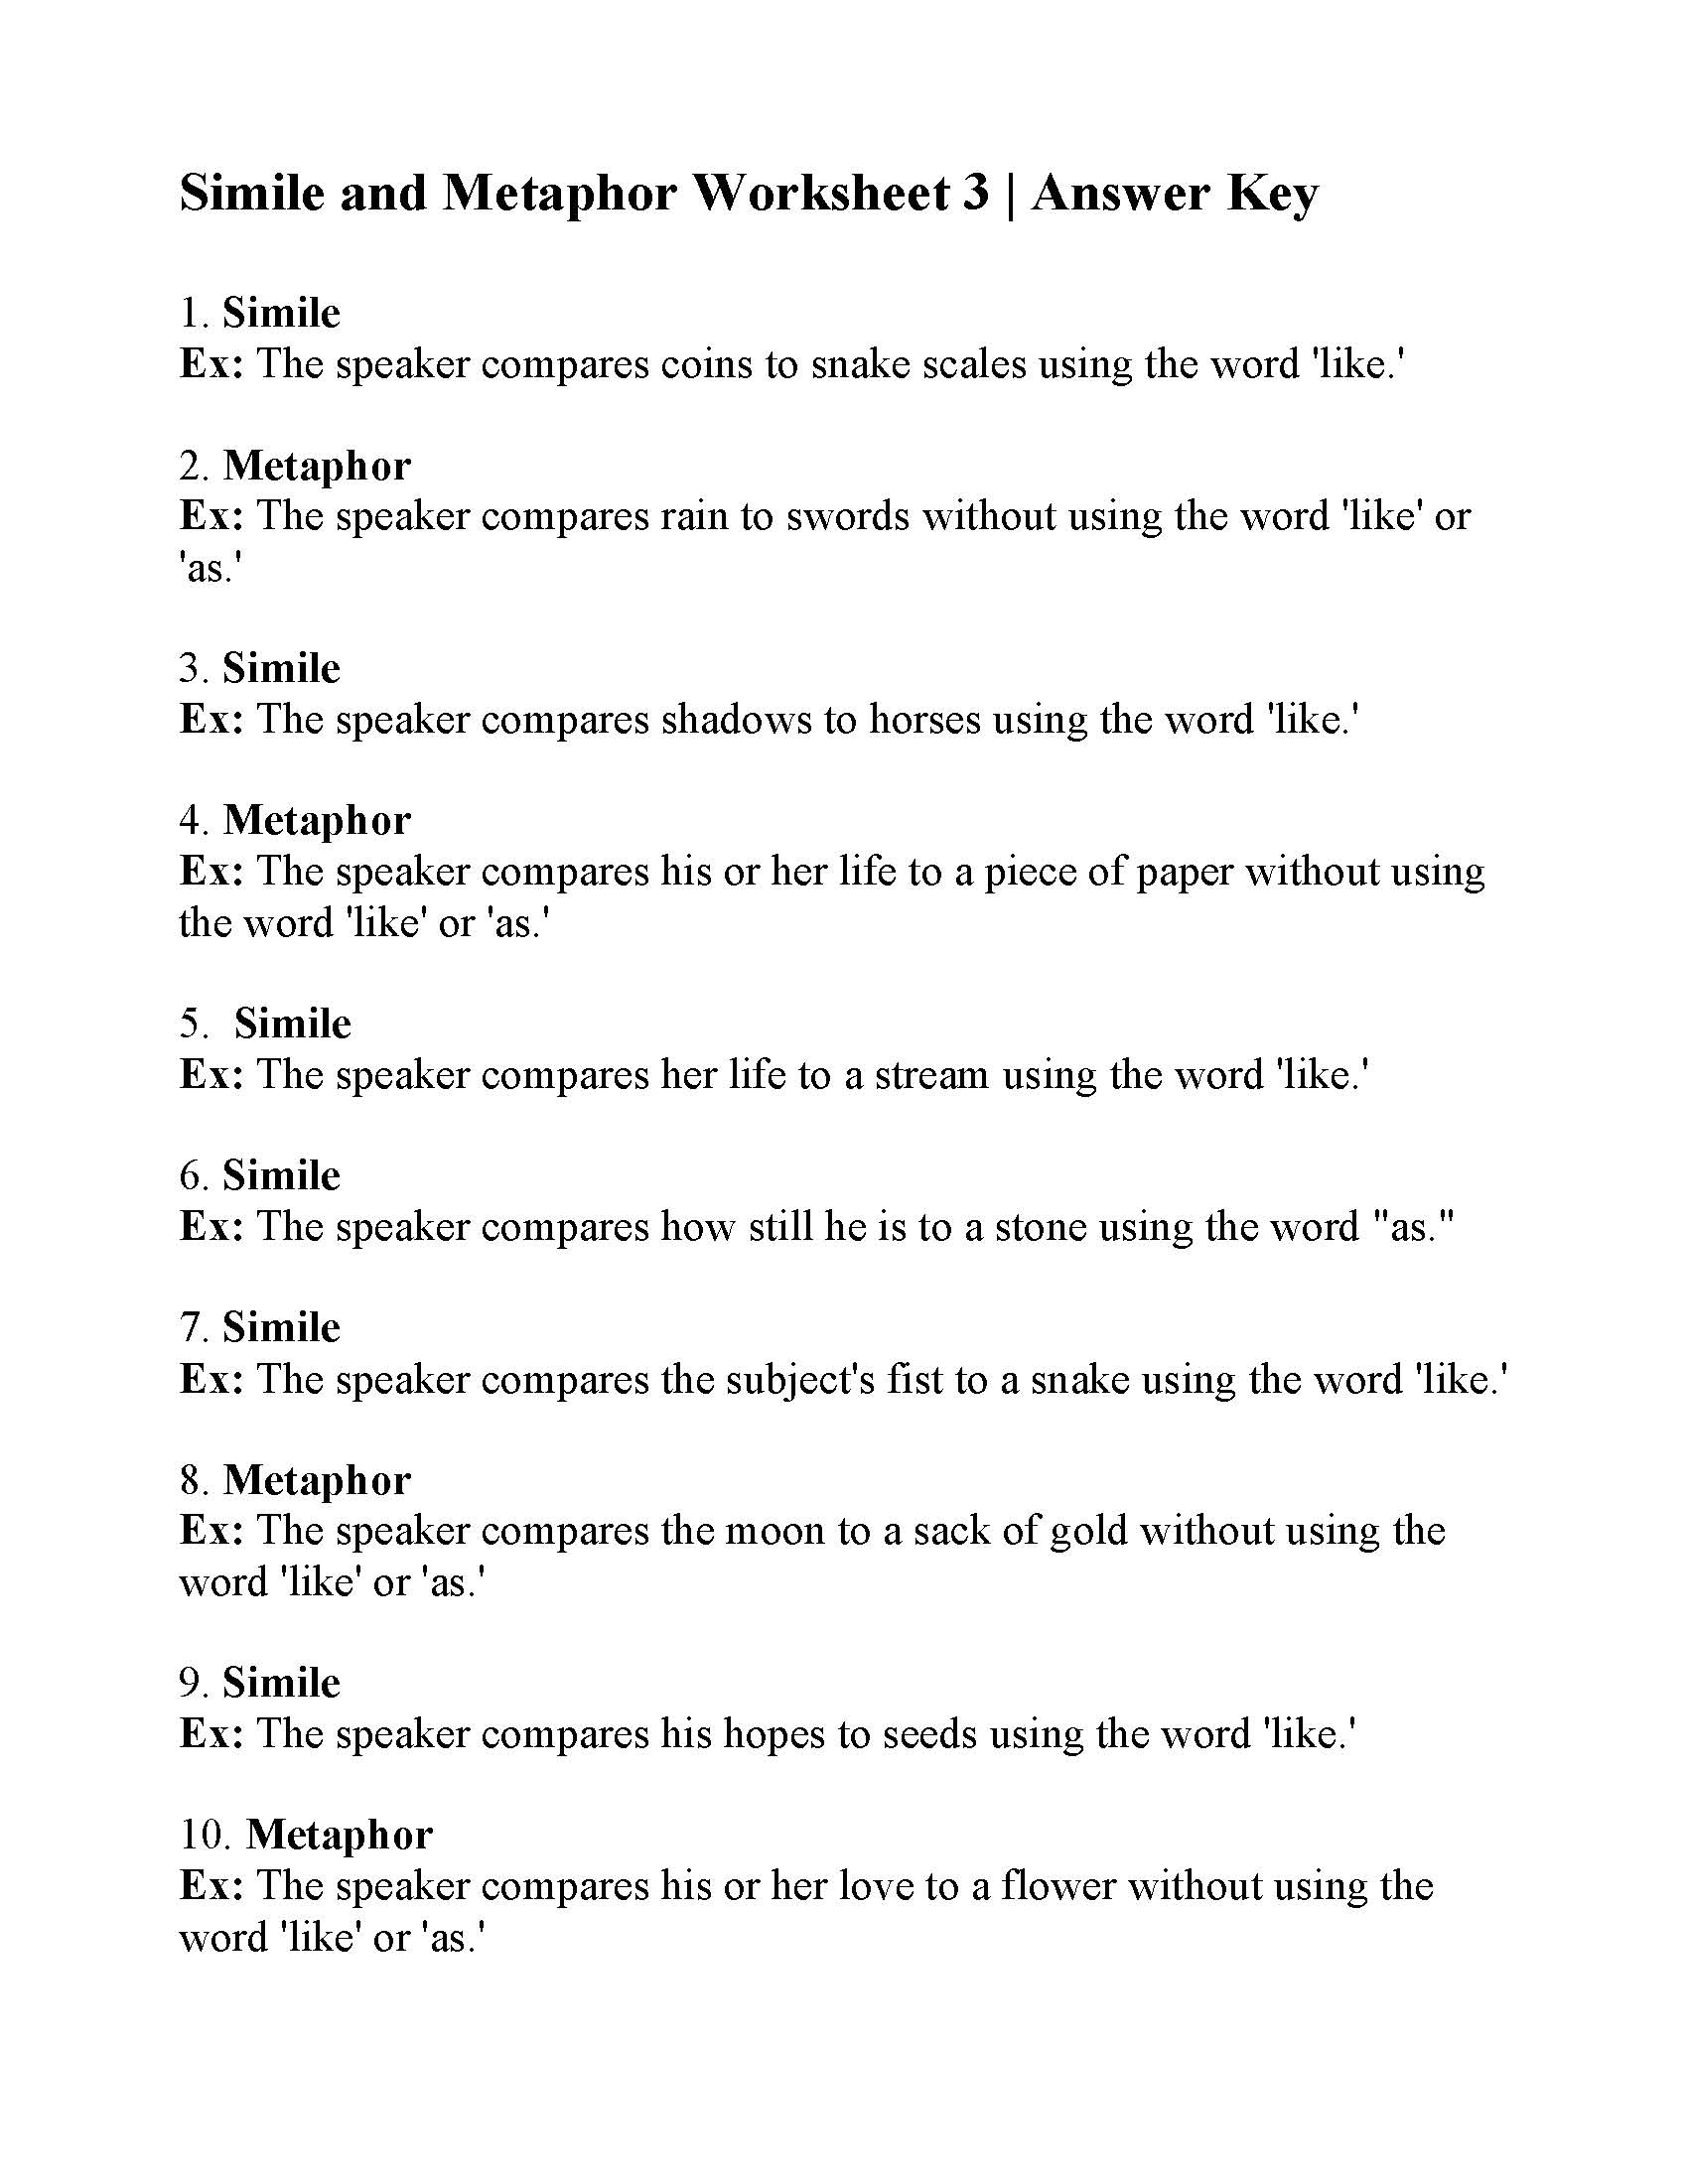 Simile and Metaphor Worksheet 3 | Answers